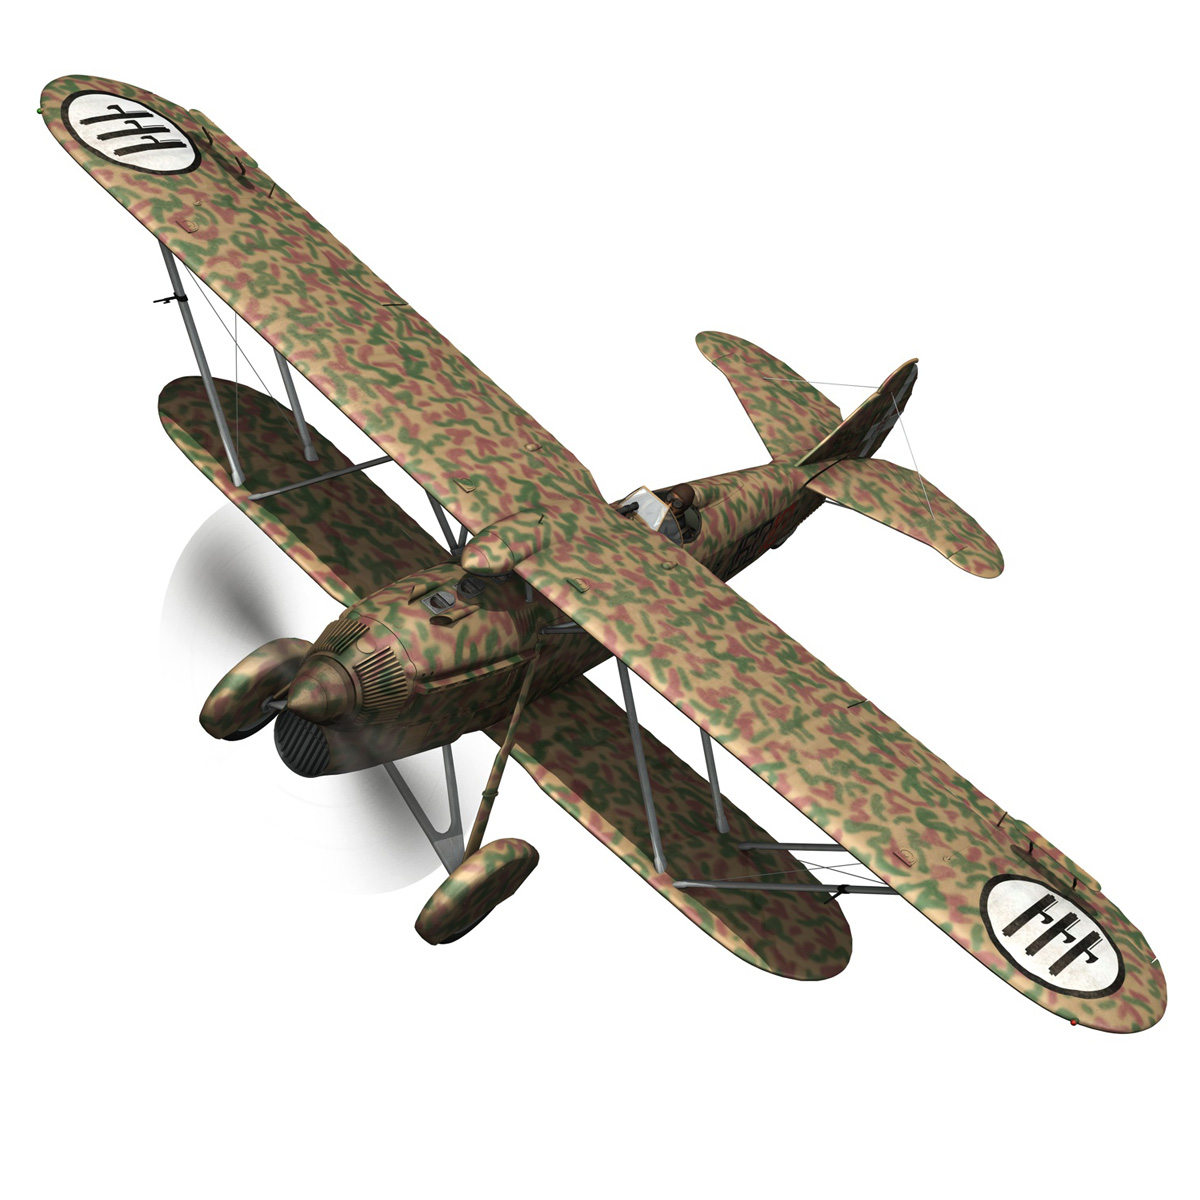 fiat cr.32 – italy airforce – 160 squadriglia 3d model fbx c4d lwo obj 268104